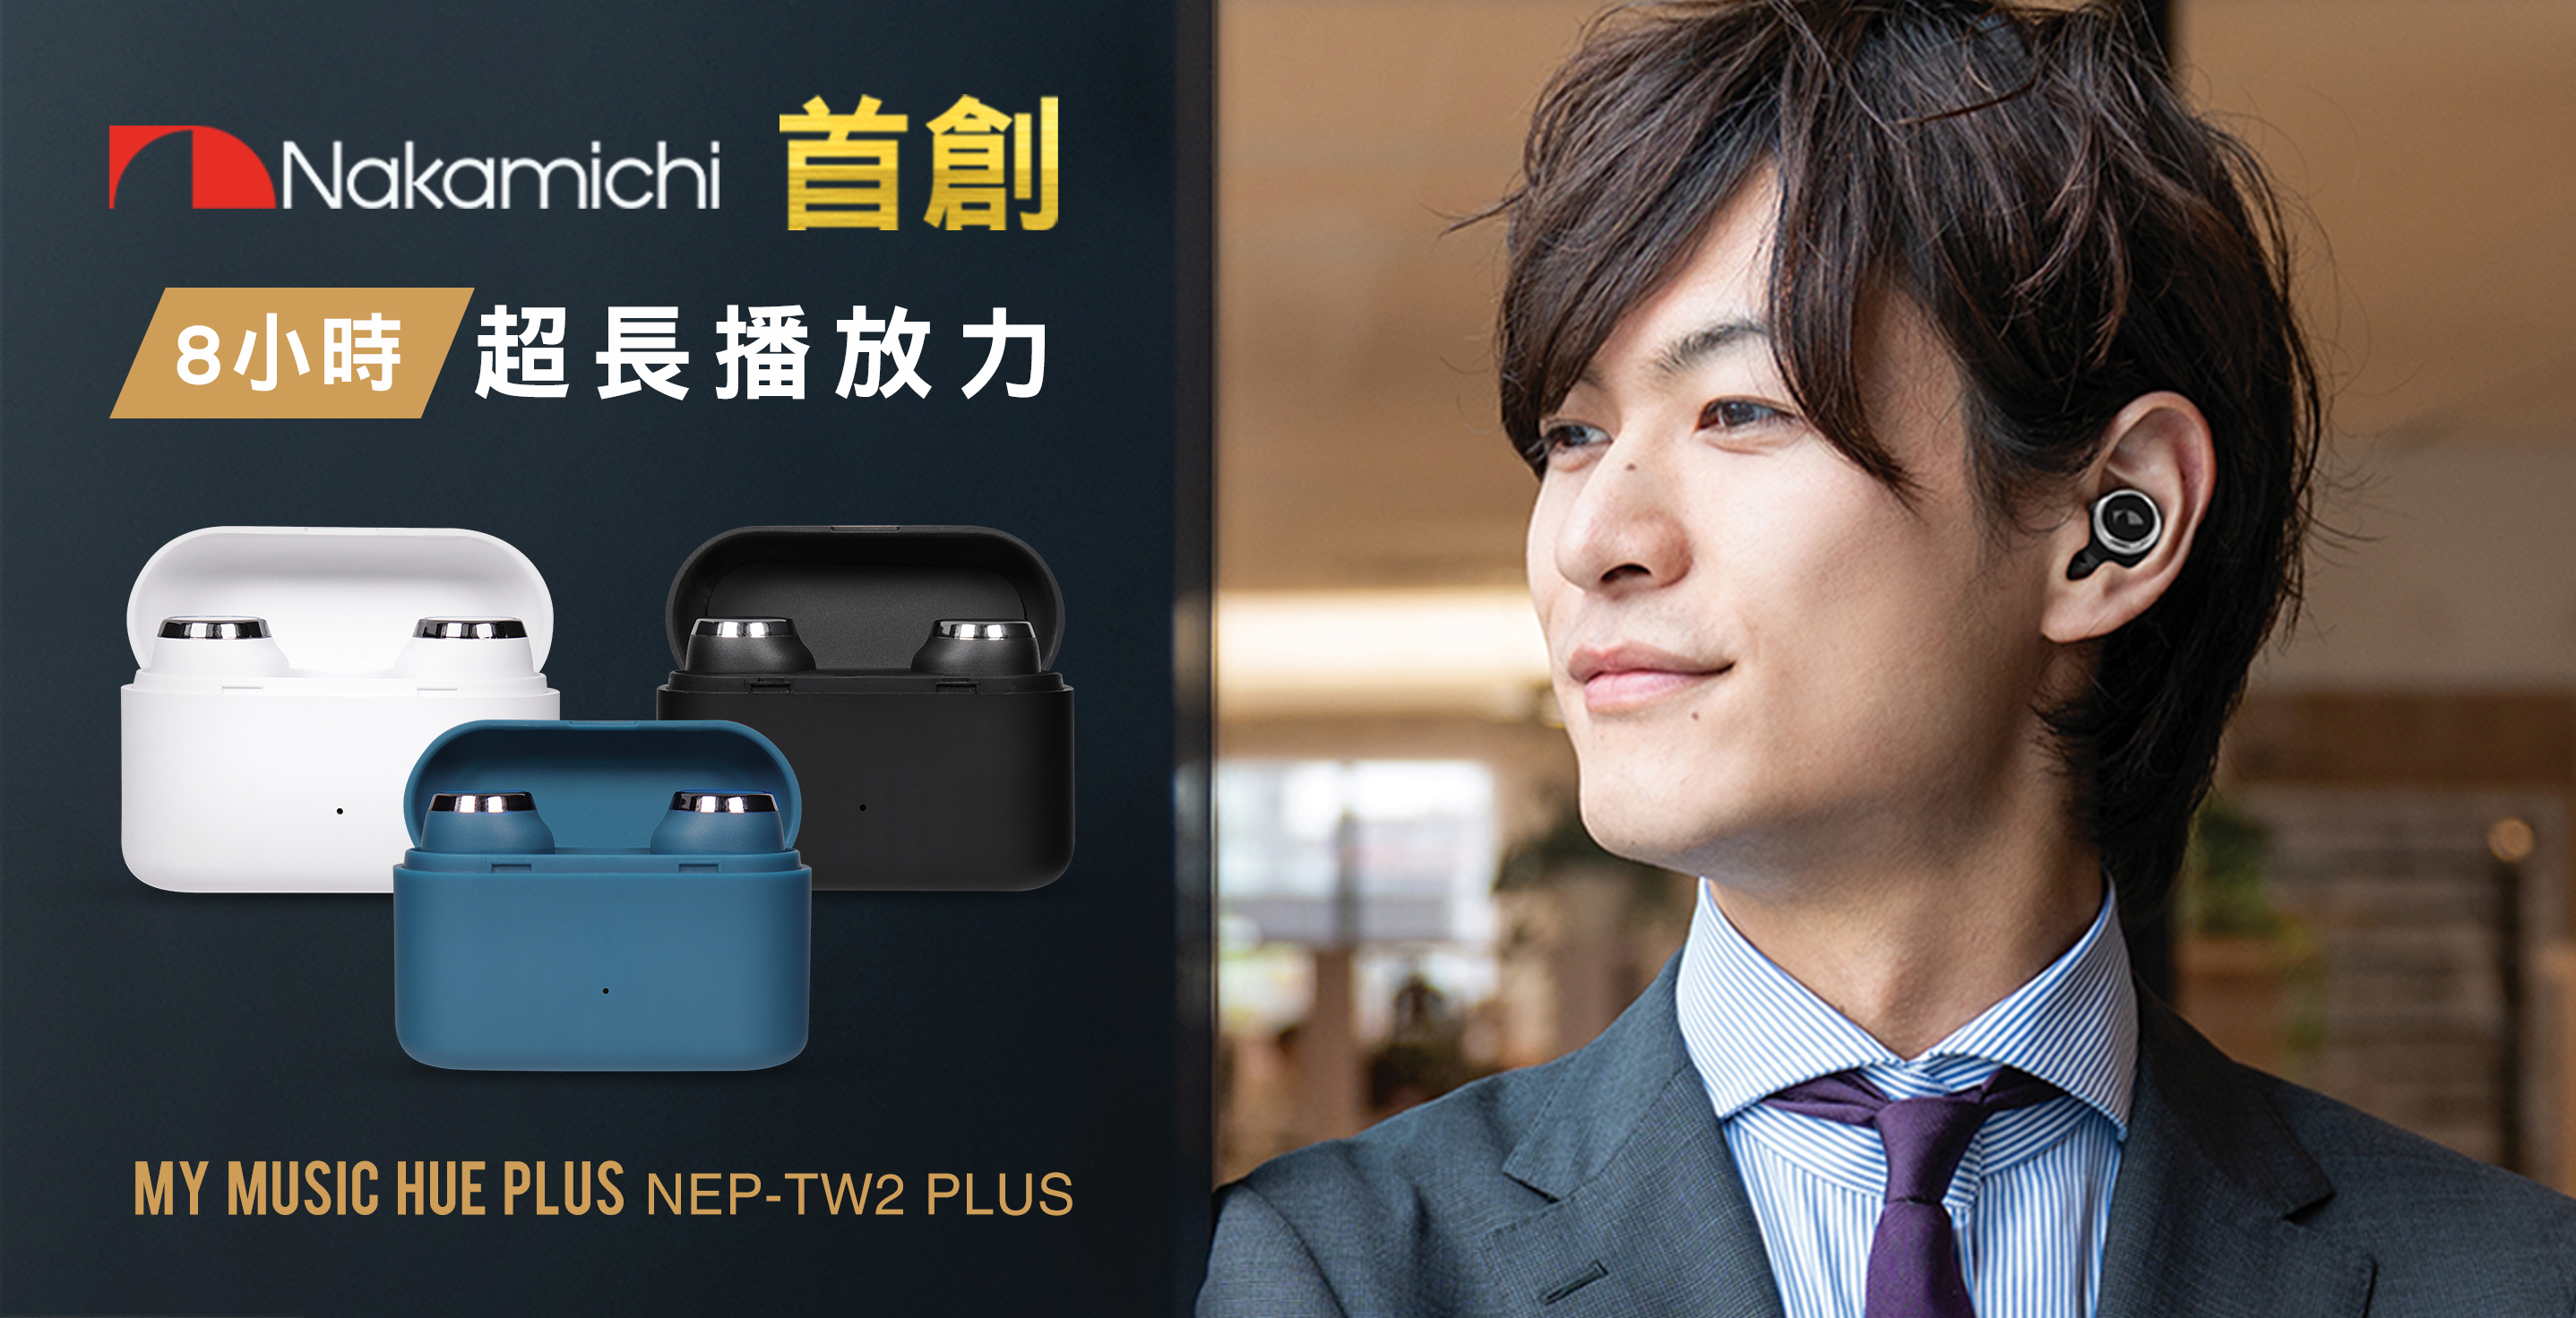 Nakamichi My Music Hue Plus True Wireless Earphones NEP-TW2 Plus